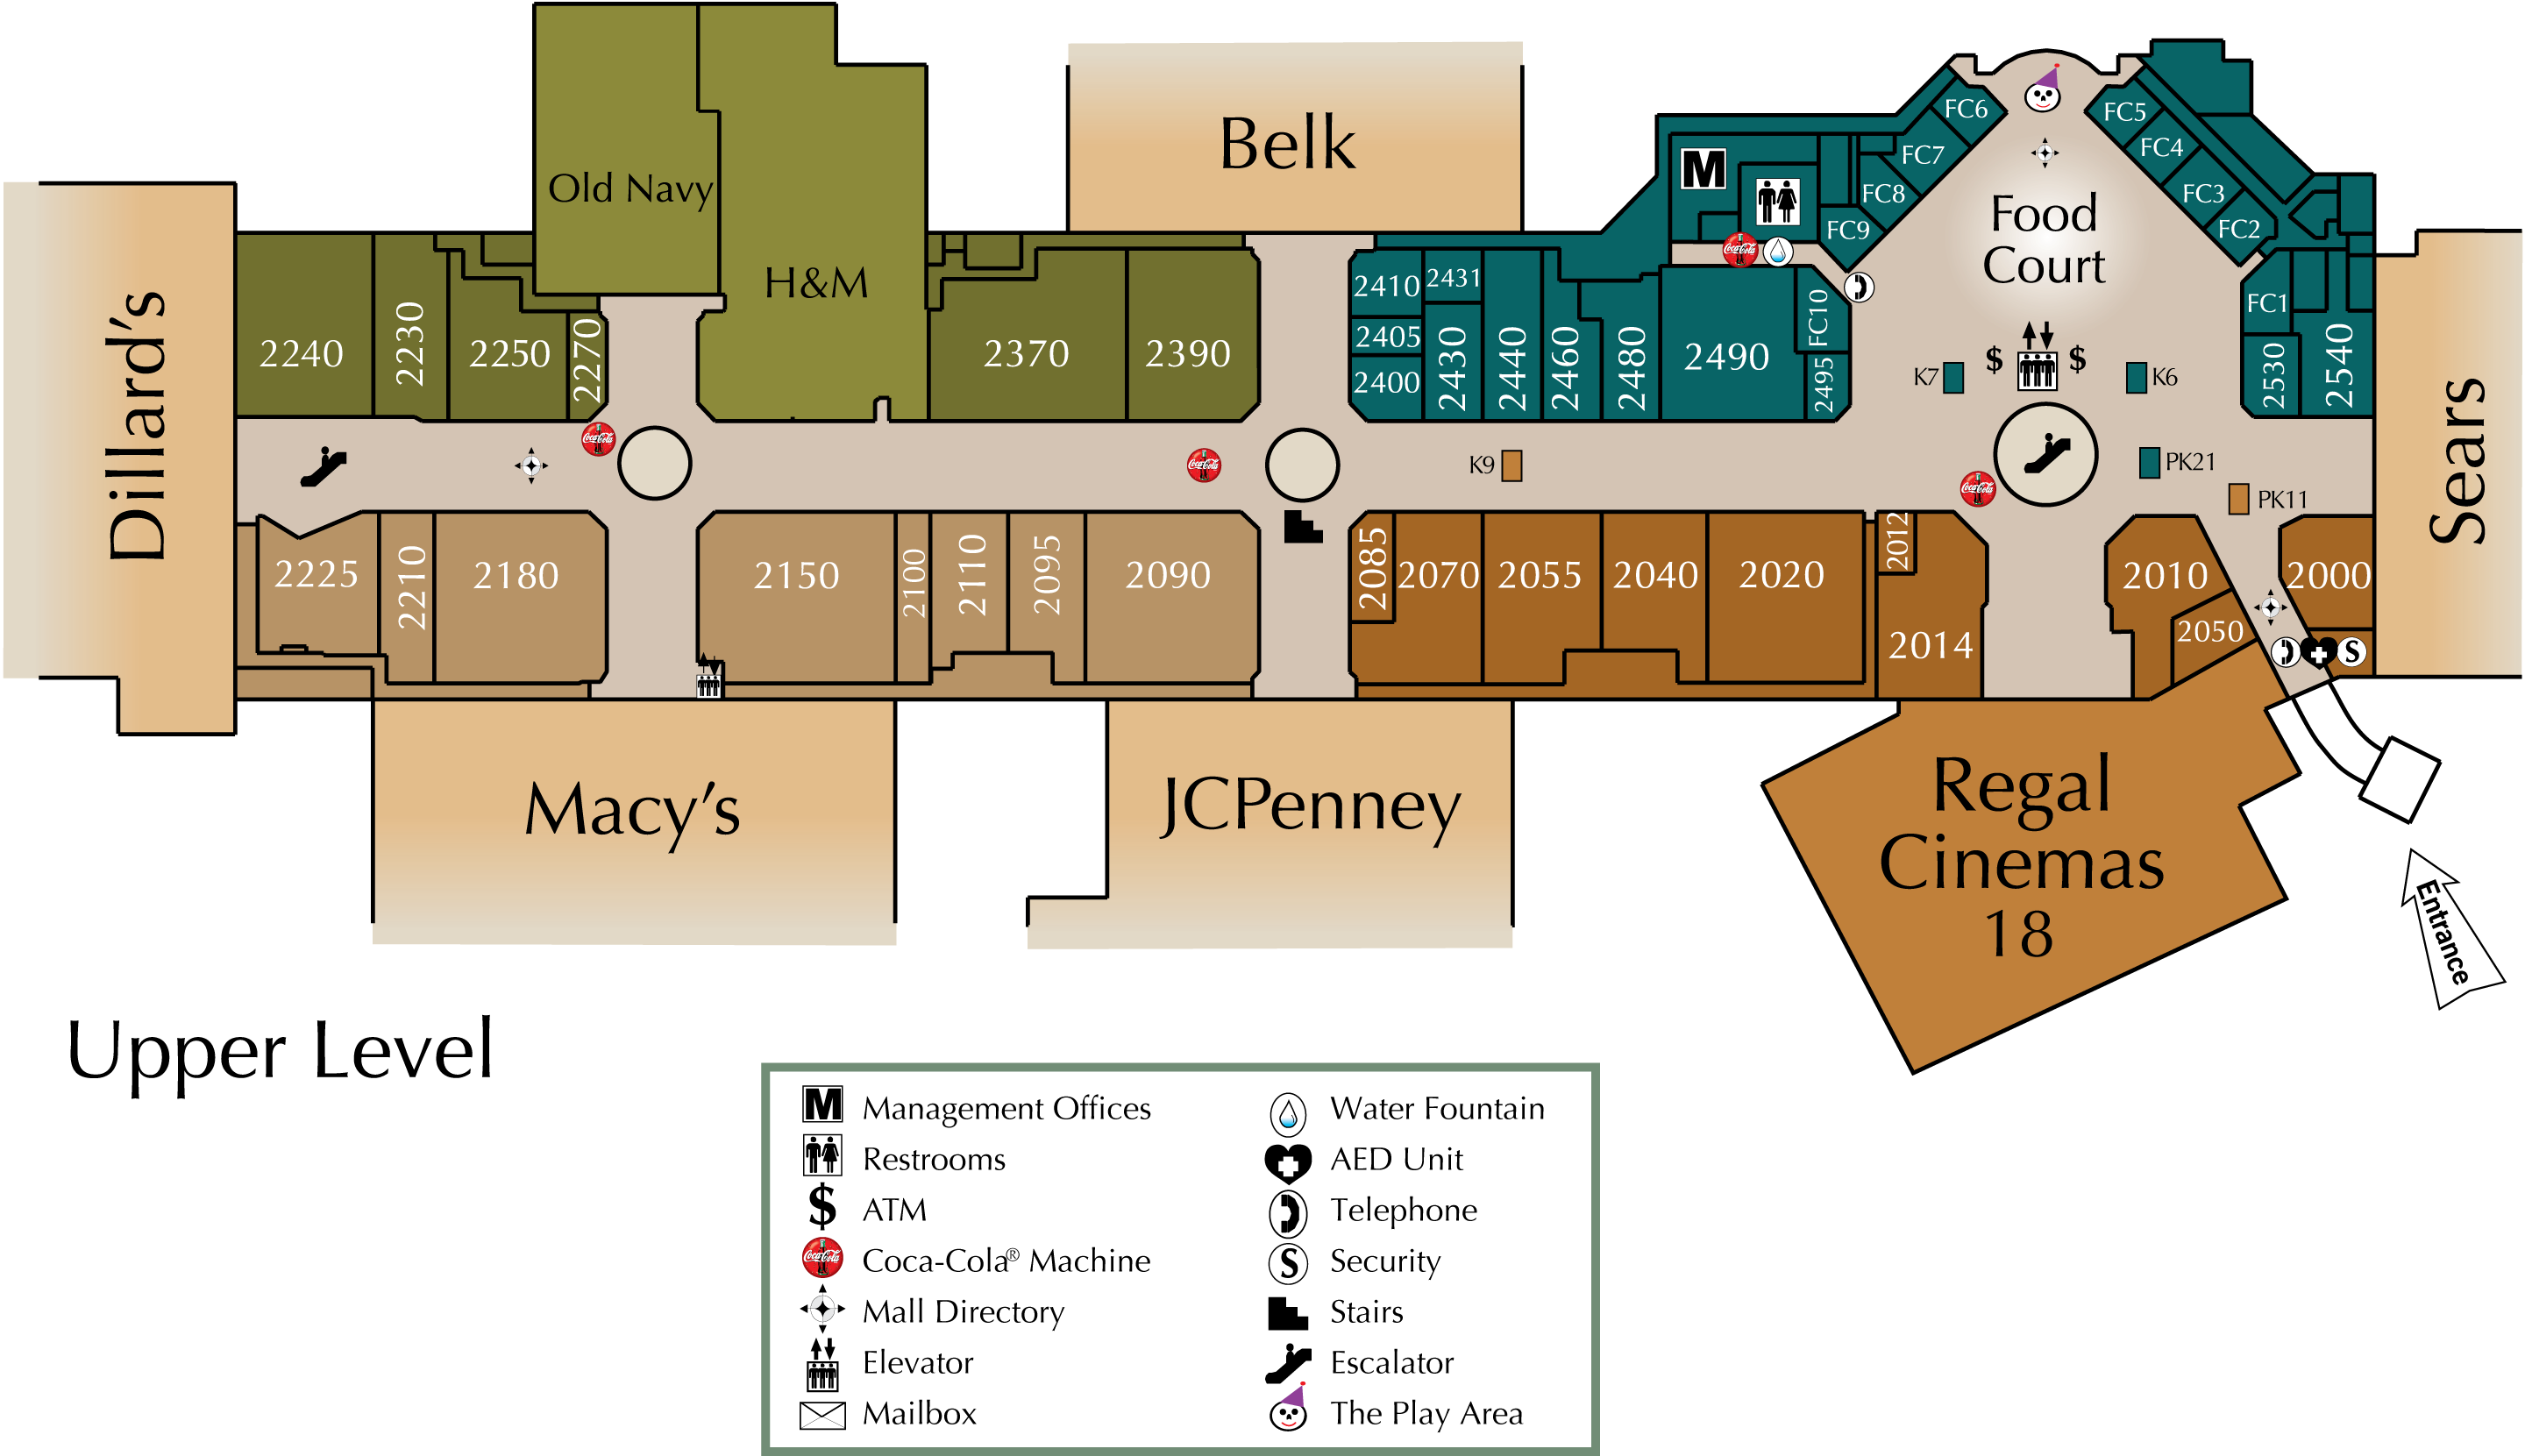 Mall Directory Arbor Place - Map of georgia mall